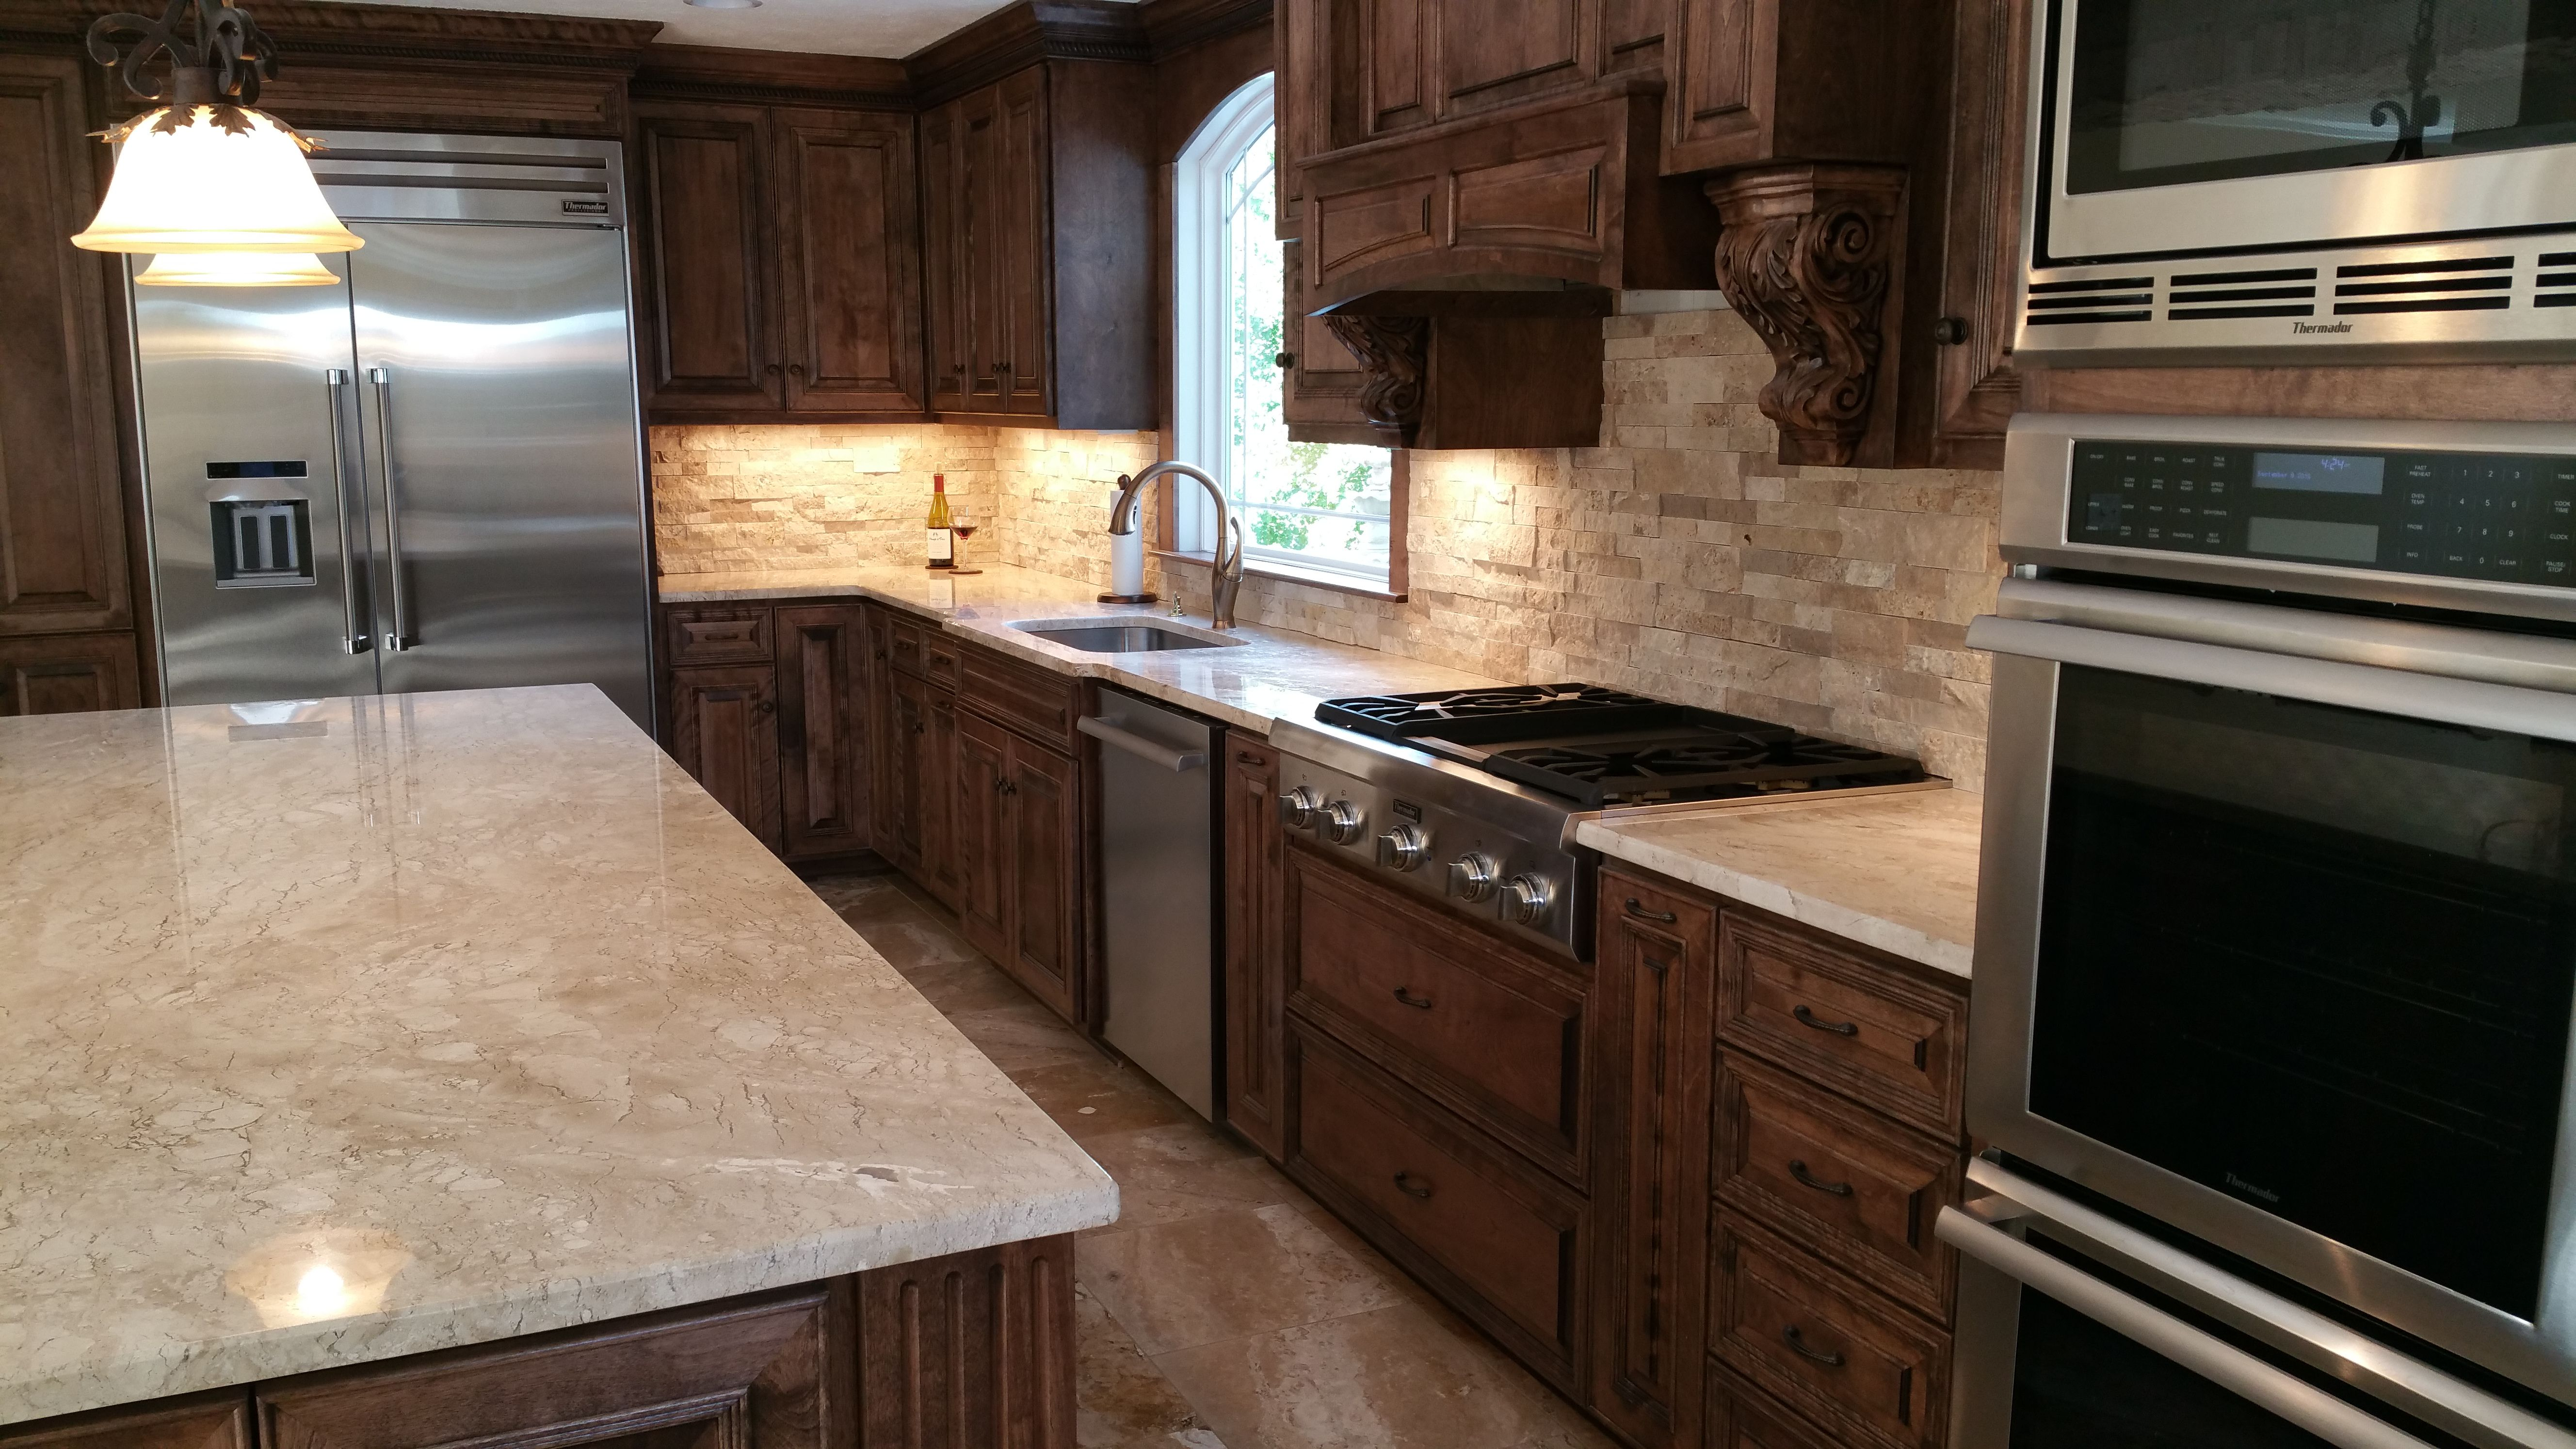 Travertine Tile The Floor Throughout Main Level Countertops Stacked